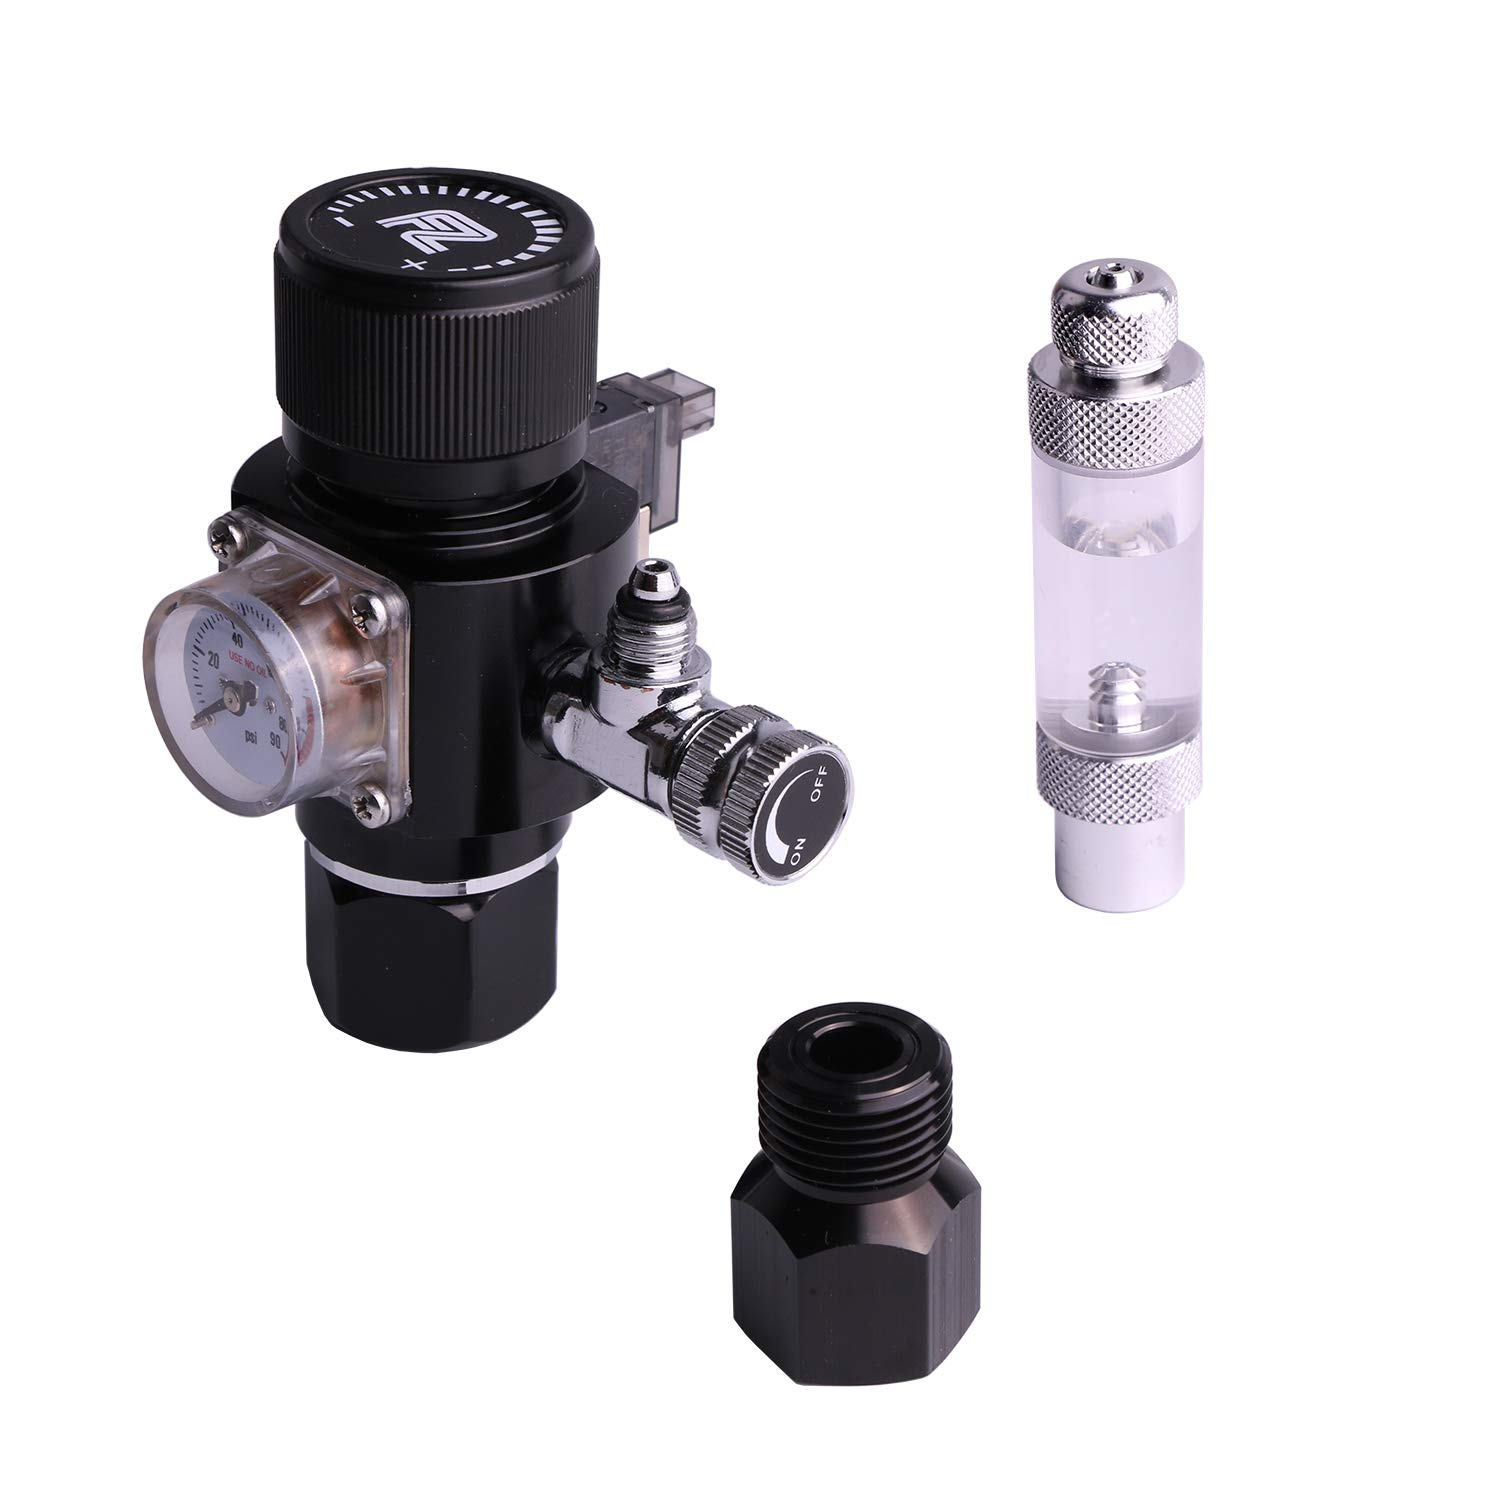 FZONE Aquarium CO2 Regulator Triple Stage with DC Solenoid and Bubble Counter Check Valve Compatible Paintball Tank CGA320 CO2 Cylinder by FZONE